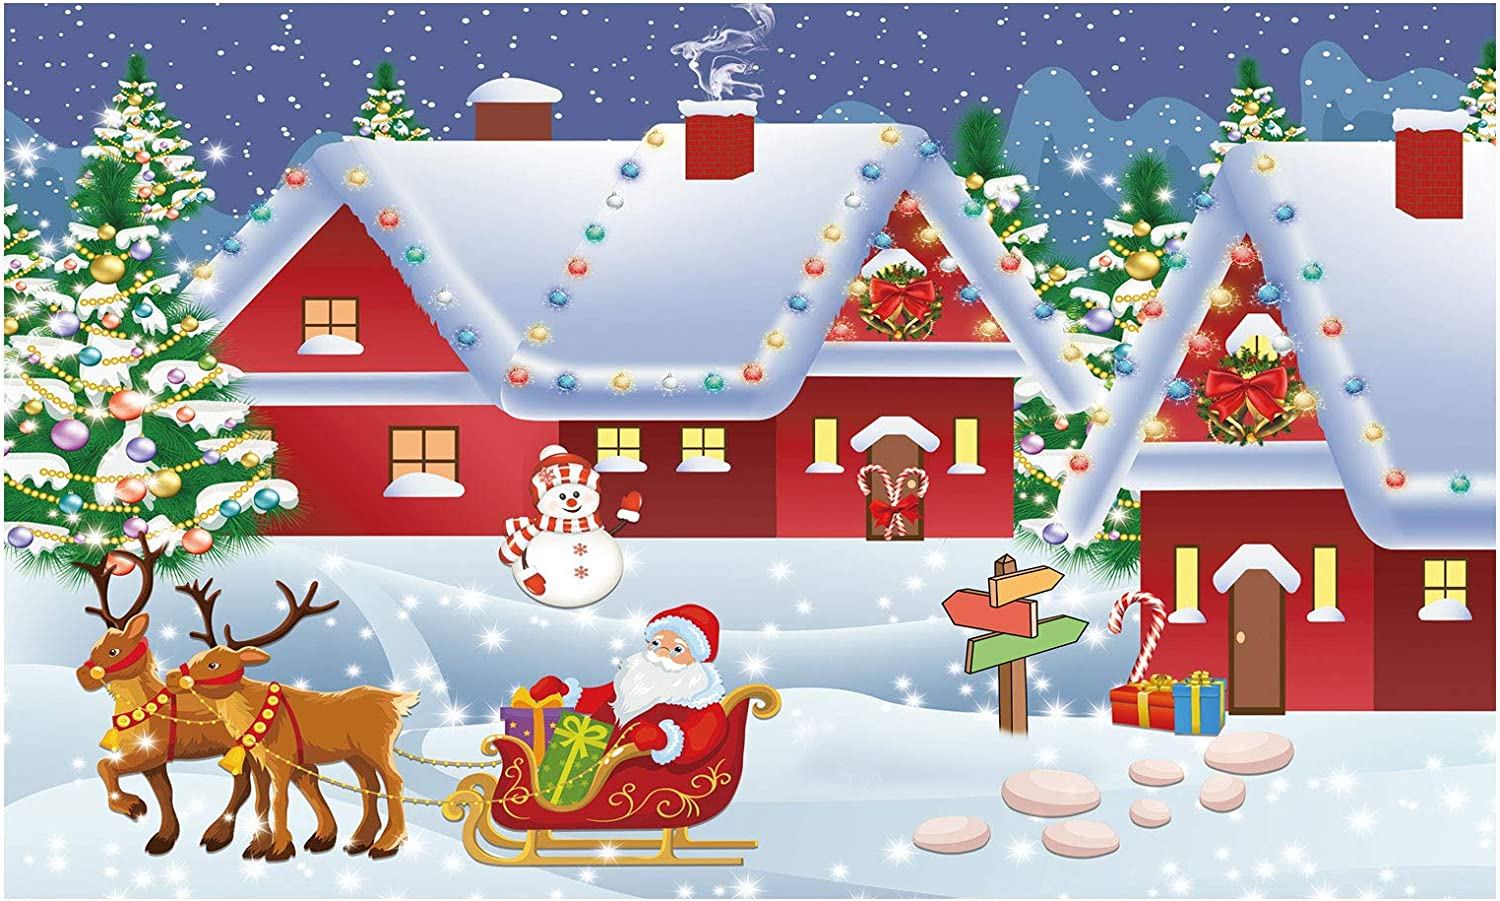 Funnytree Christmas Santa's Village Backdrop Photography Winter Merry Xmas Reindeer Wonderland Background Snowman Landspace Baby Kids Party Decor Portrait Cake Table Banner Photo Studio Props 5x3ft